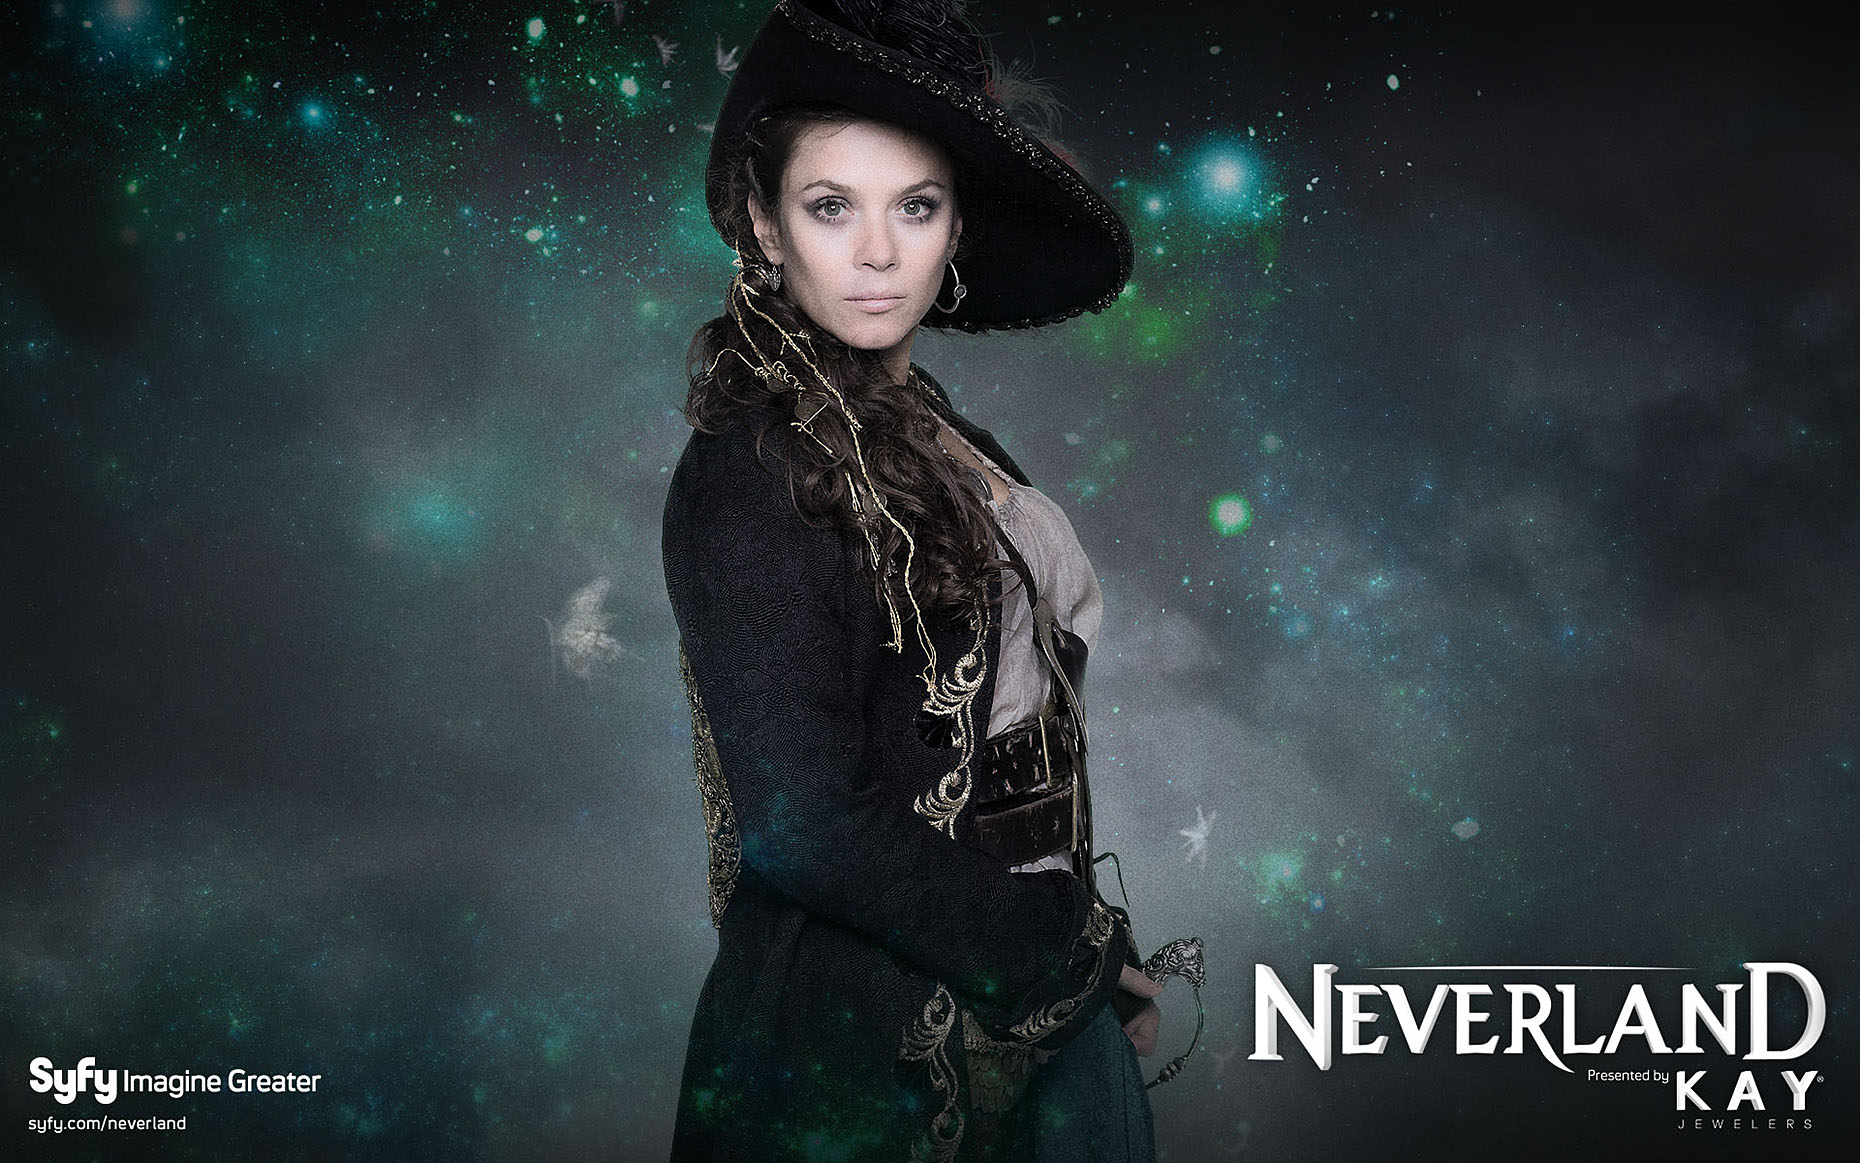 NEVERLAND Poster with Anna Friel